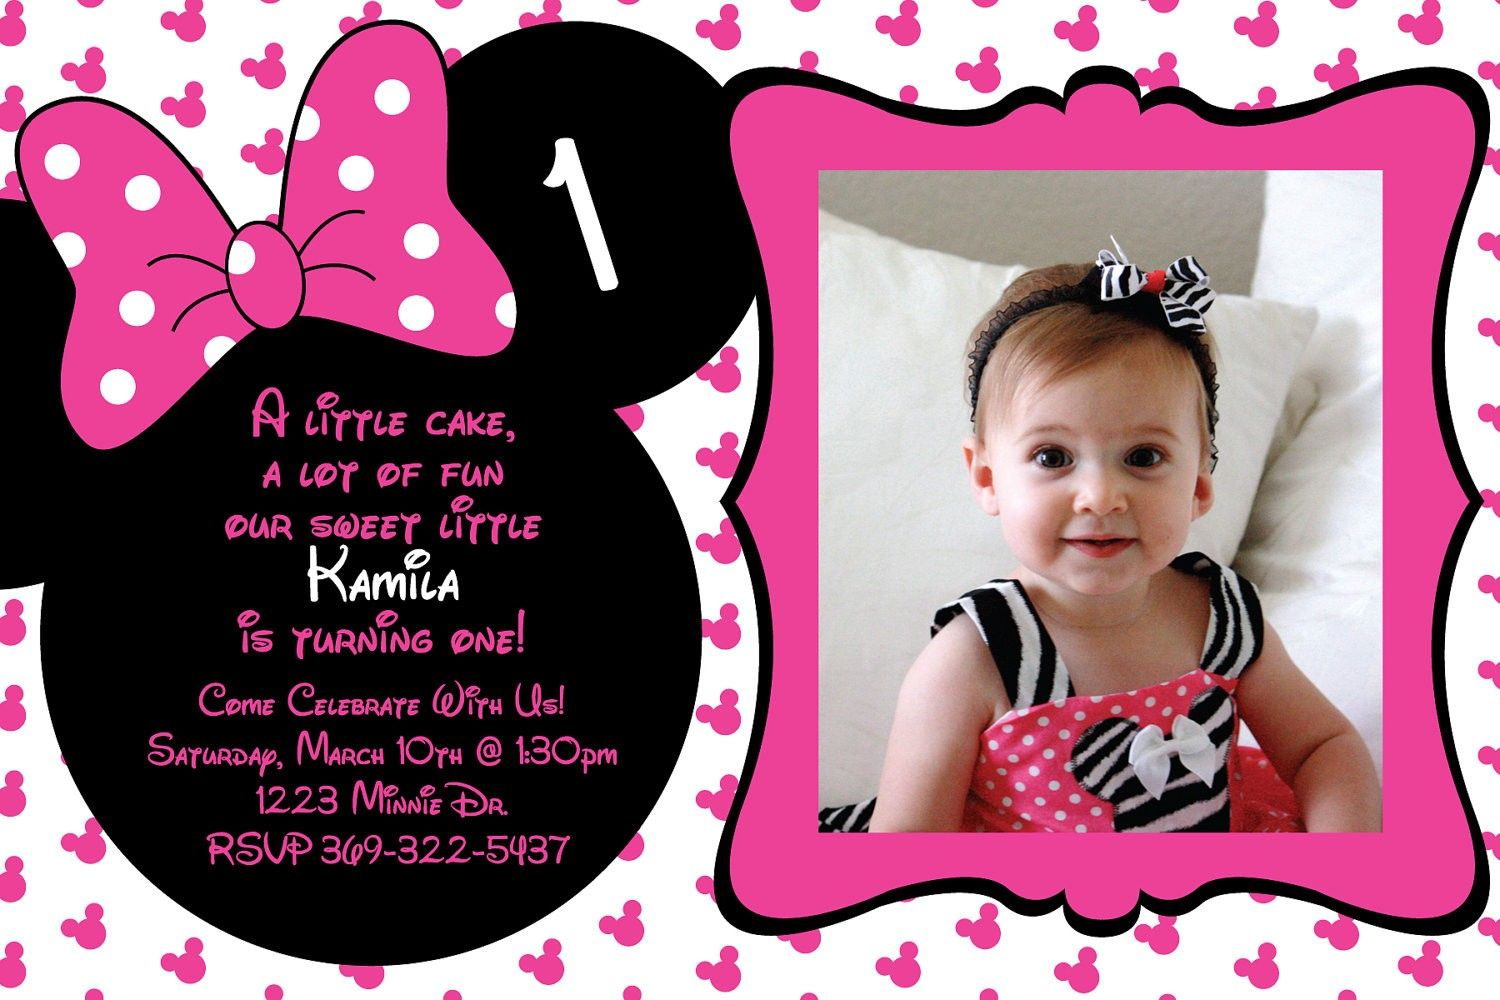 Create Minnie Mouse First Birthday Invitations Buy This Card Get 15 Minnie Mouse Birthday Invitations Minnie Mouse Invitations Minnie Mouse First Birthday